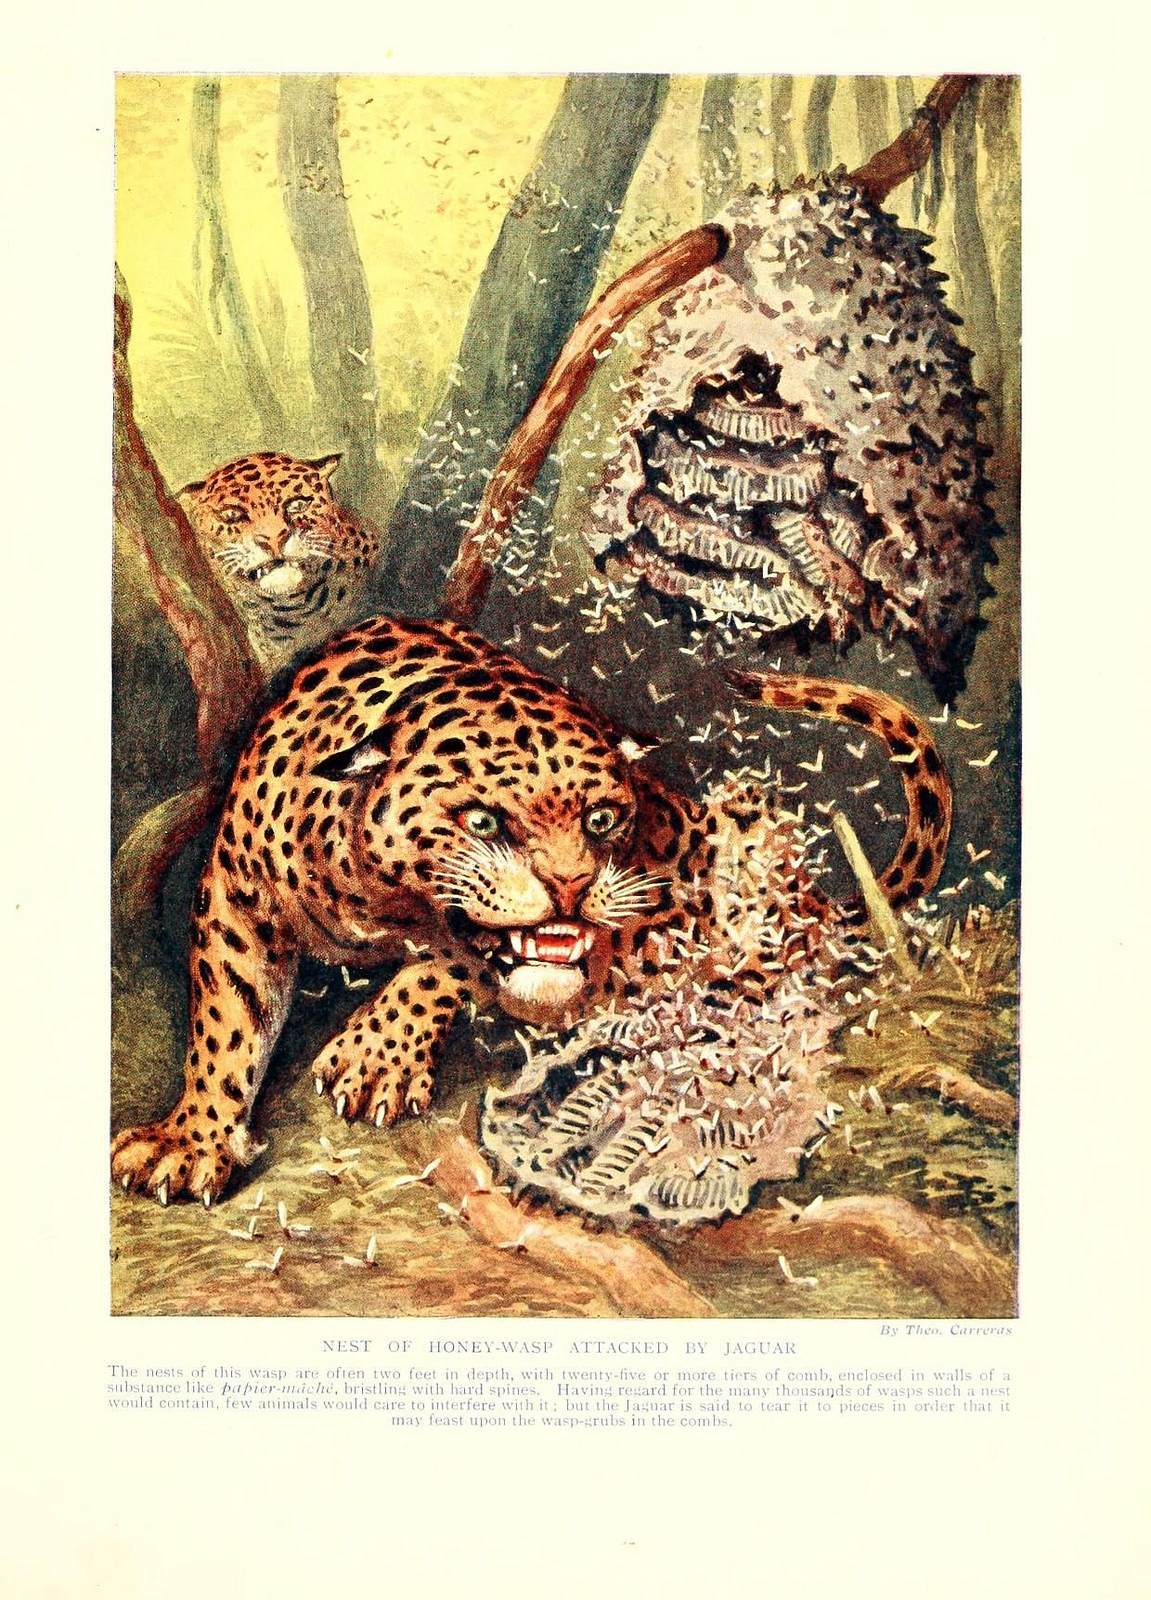 Honey Wasp Attacked by Jaguar, Marvels of Insect Life, 1916